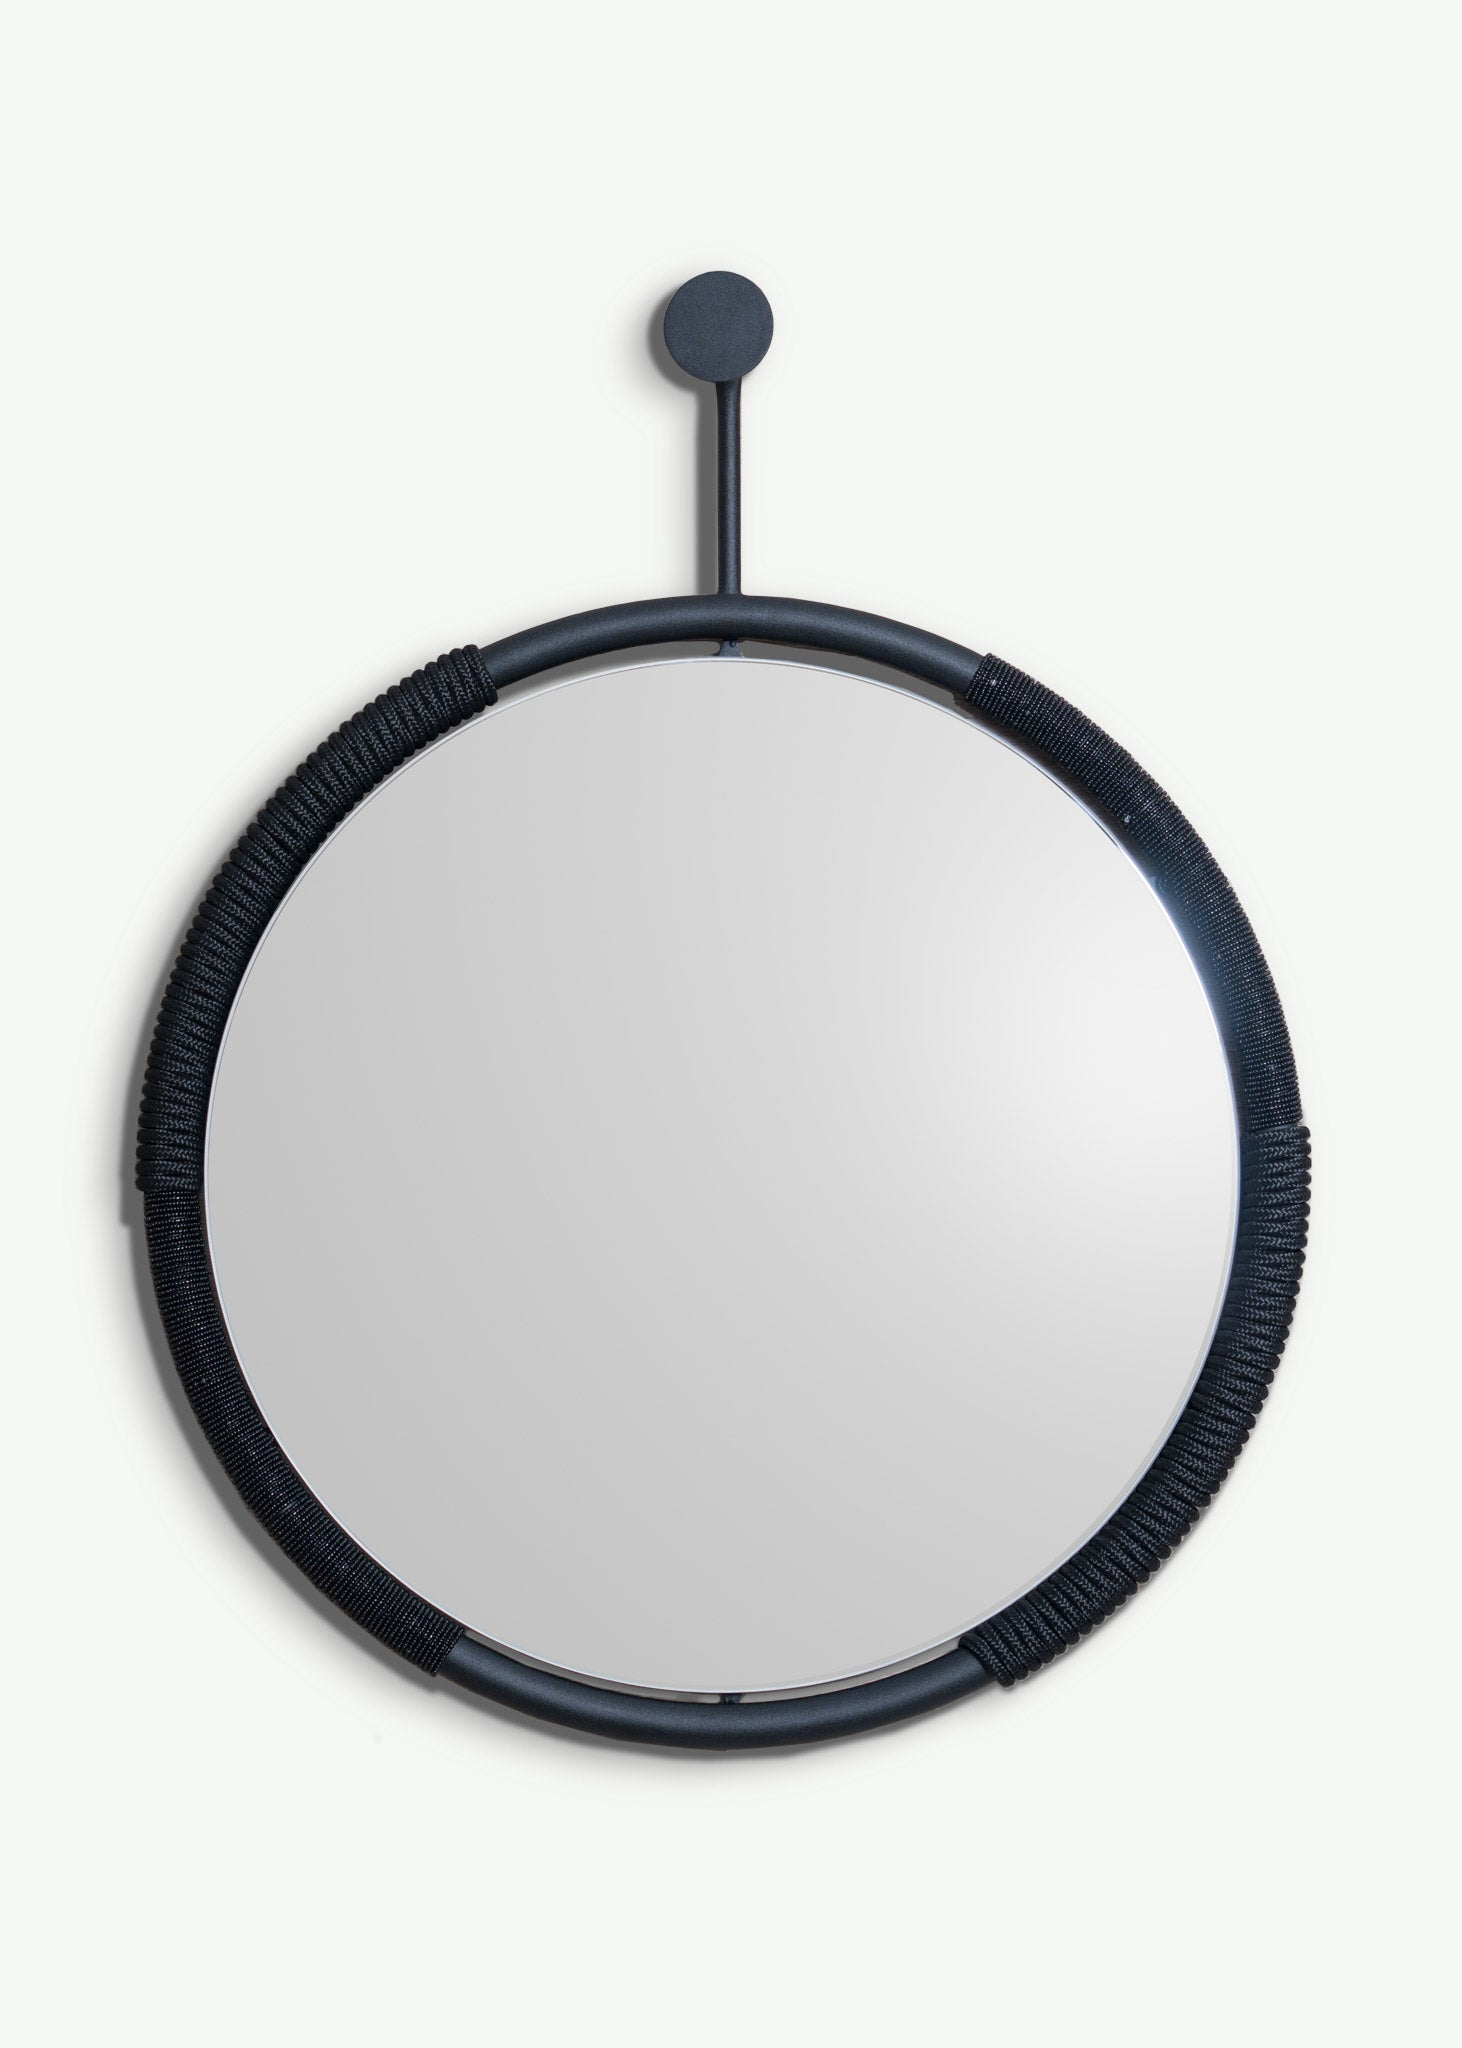 The Buhle Mirror